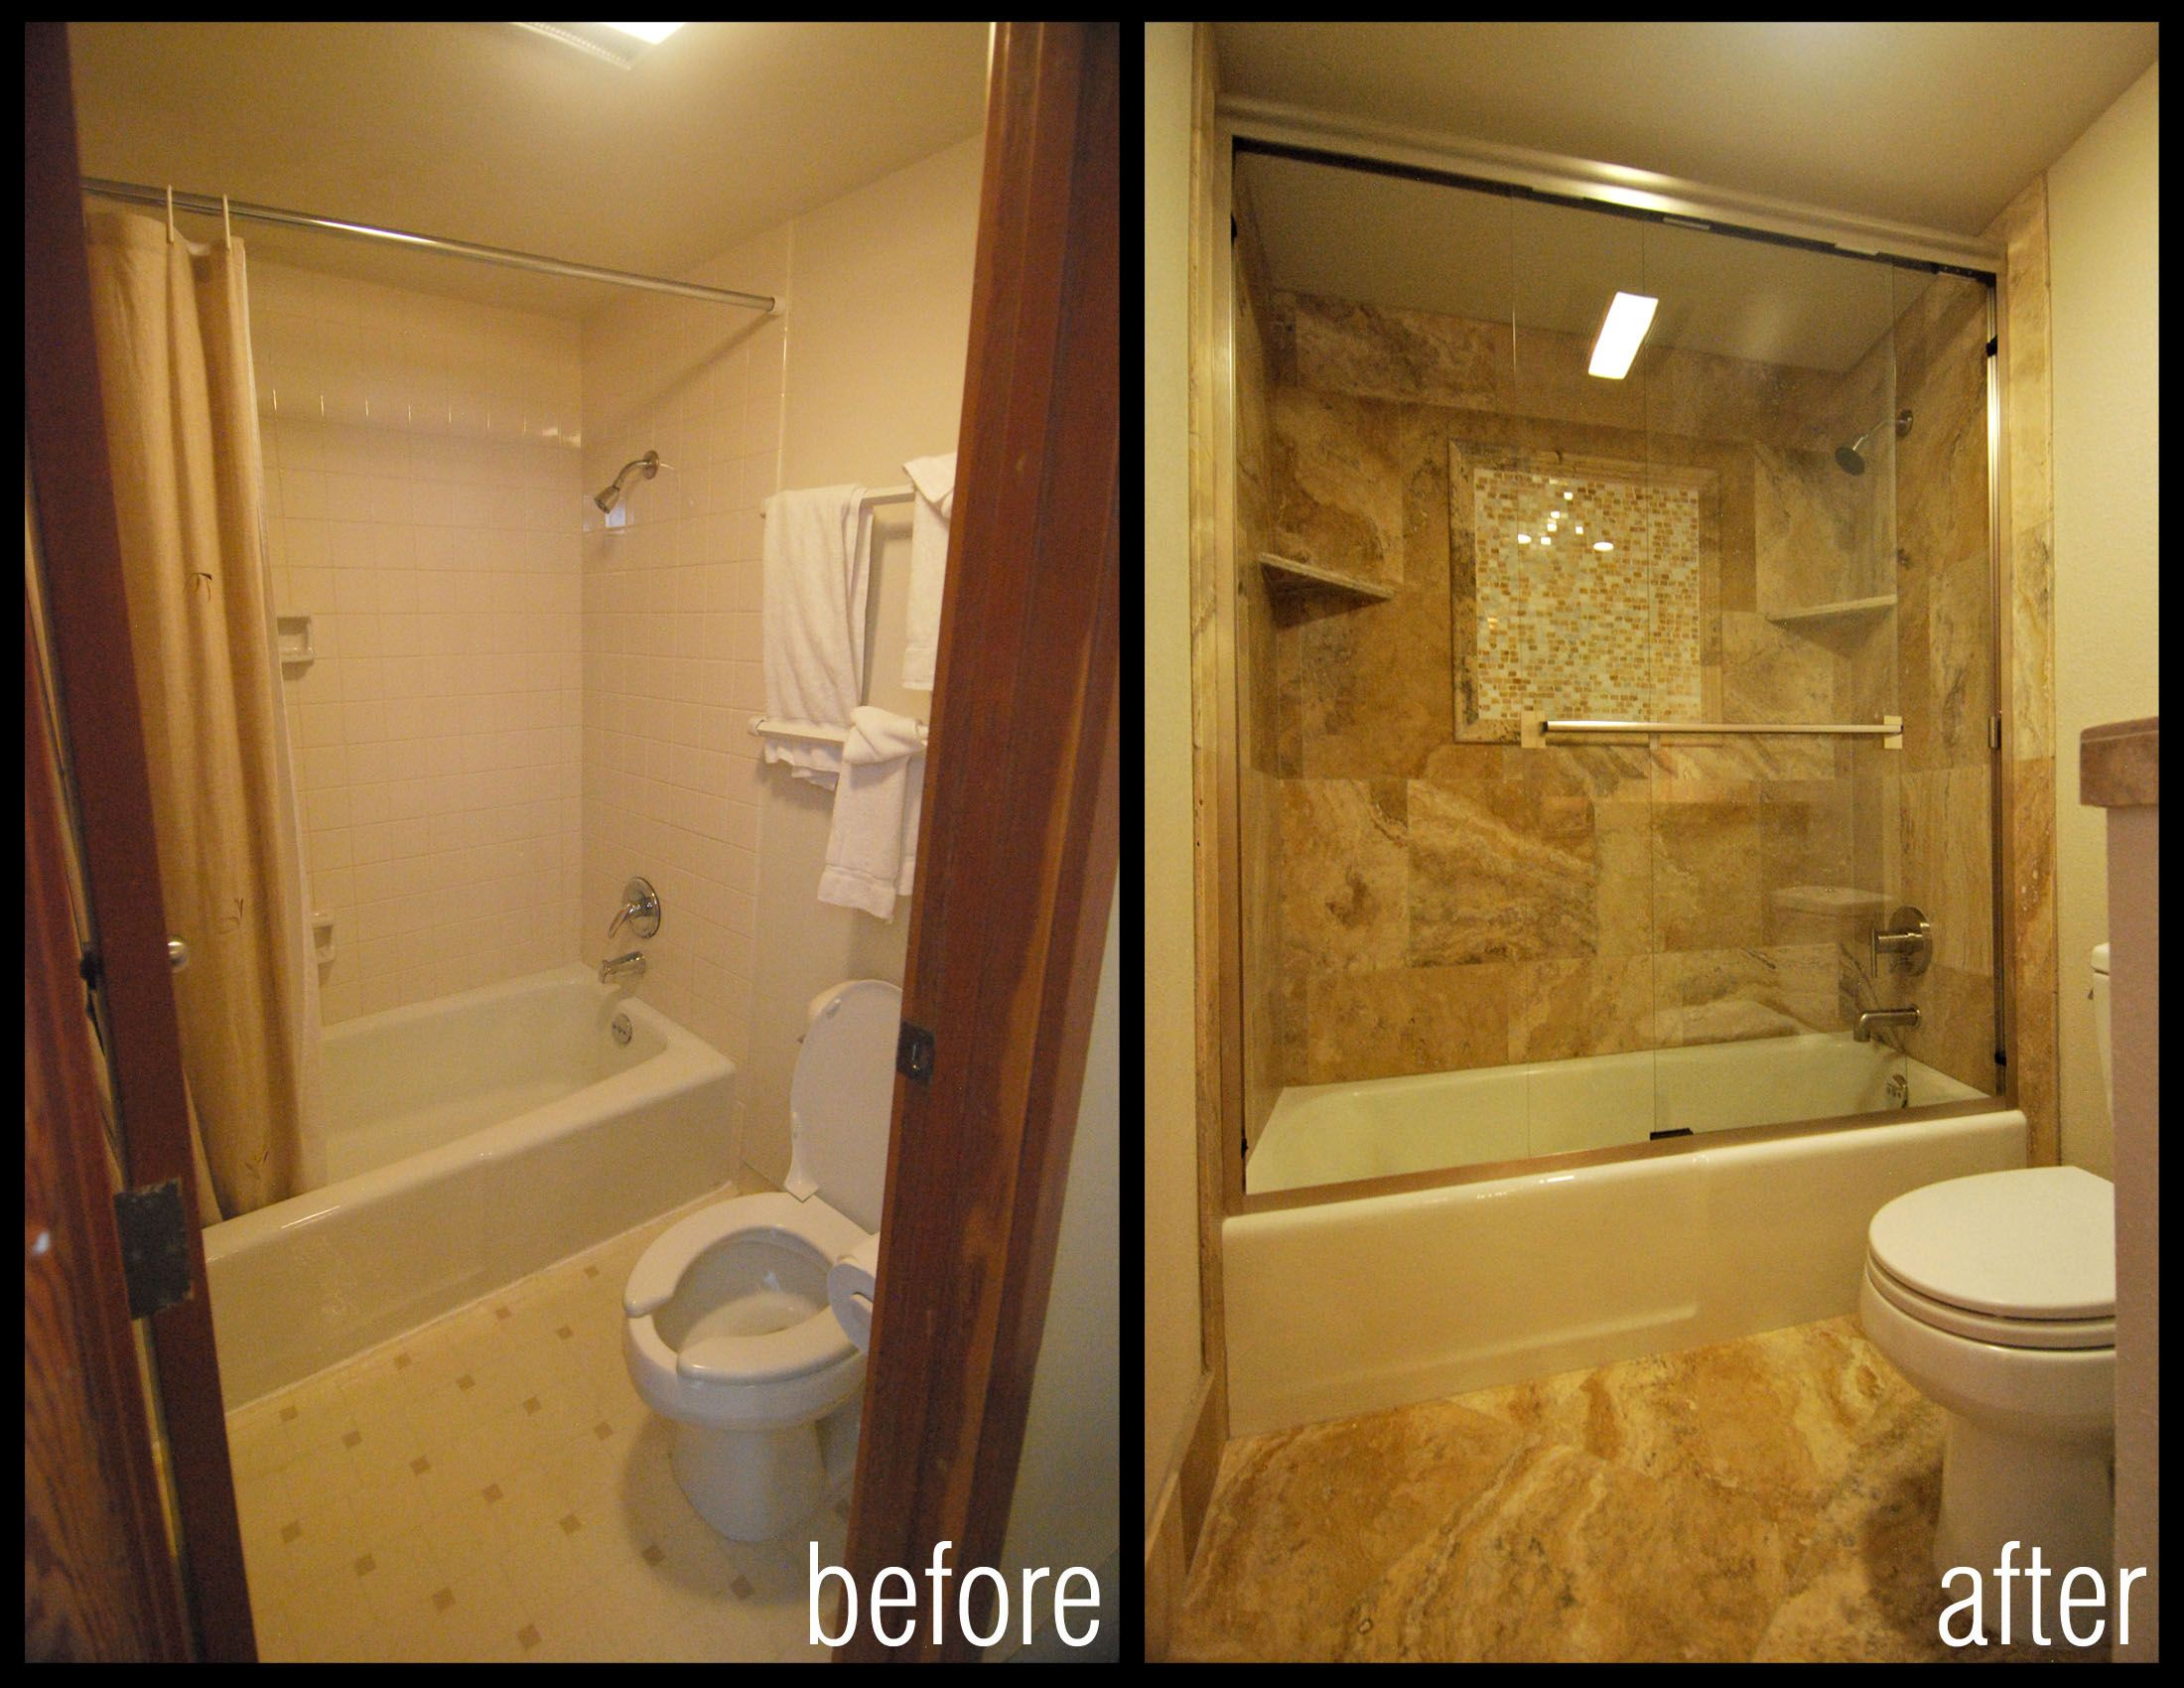 Dream House Small Bathroom Remodel Before And After Oetnnzc Before After Small San Francisco Bathroom Remodel Niche Interiors Blue Bedrooms Dance Bedroom Lig